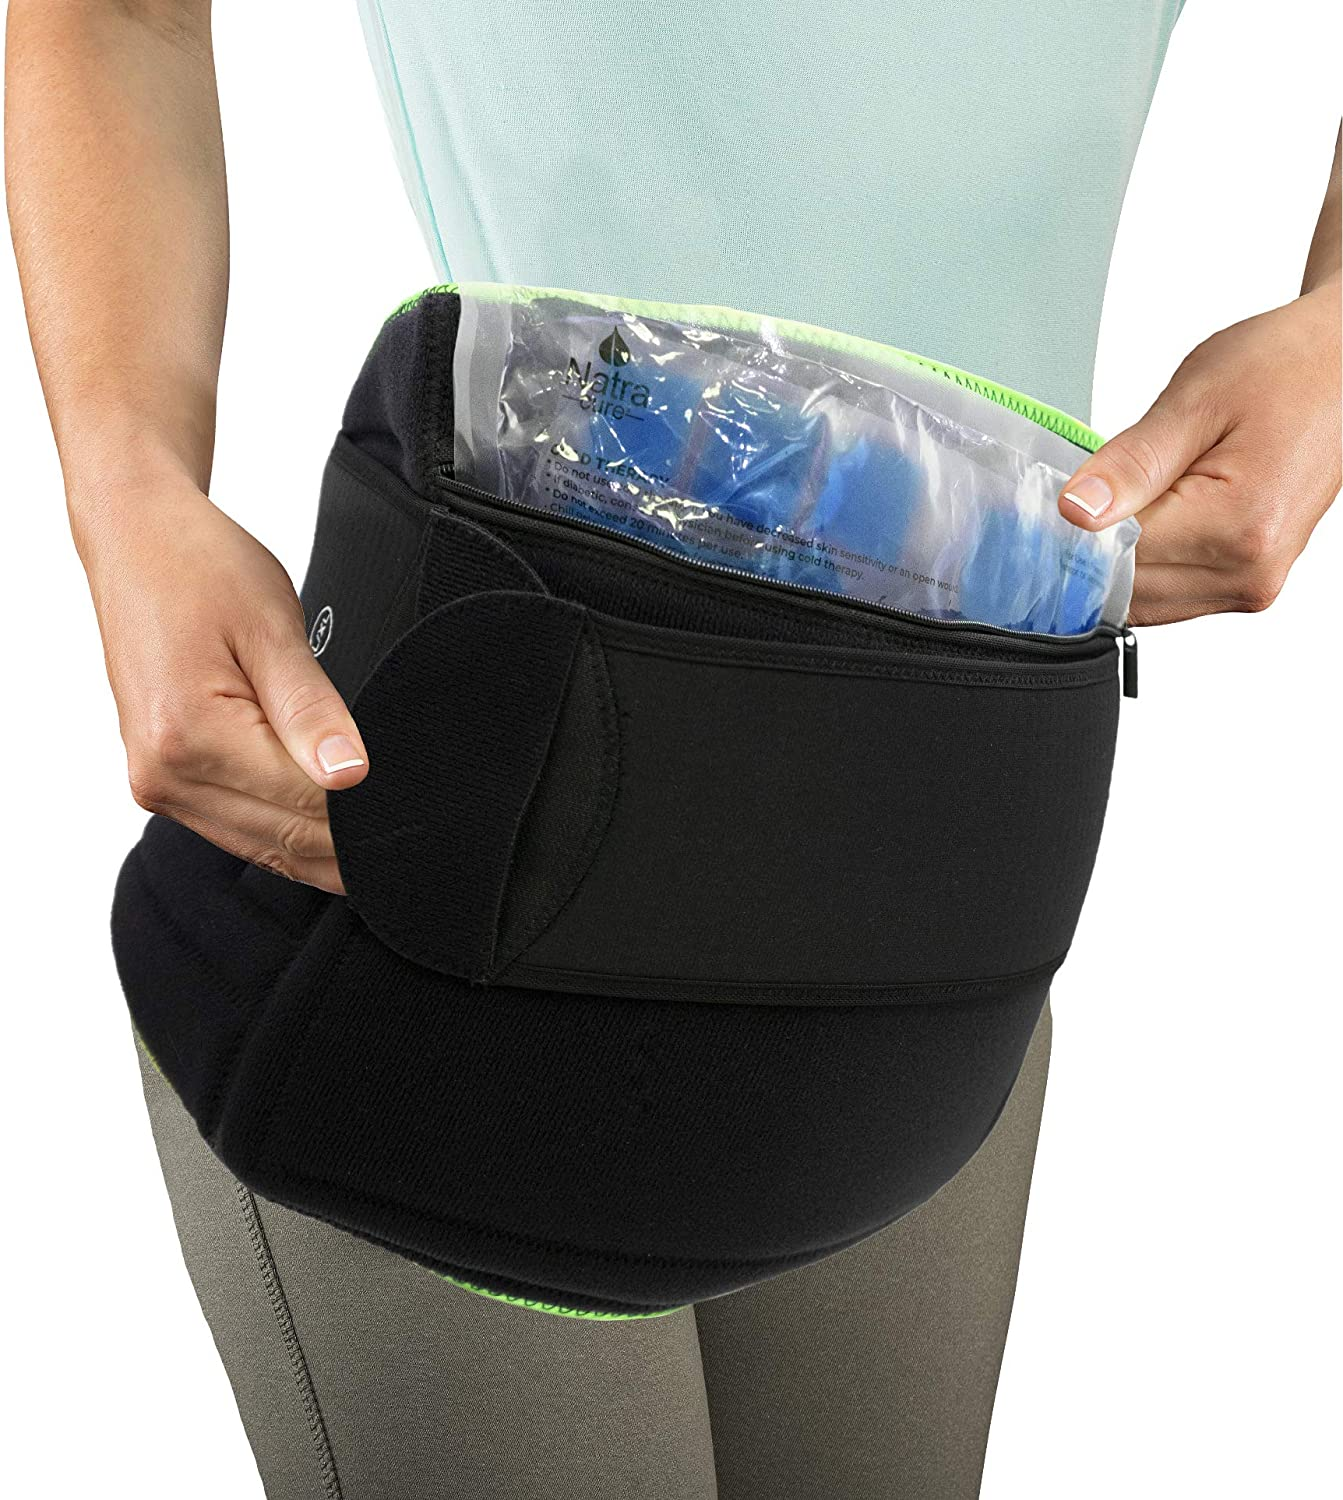 NatraCure (Hot or Cold) Hip and Back Pain Relief Wrap - (Large / X-Large) - (For Relief from Stiff Hips & Back, Inflammation, and Hip Surgery & Arthritis): Industrial & Scientific